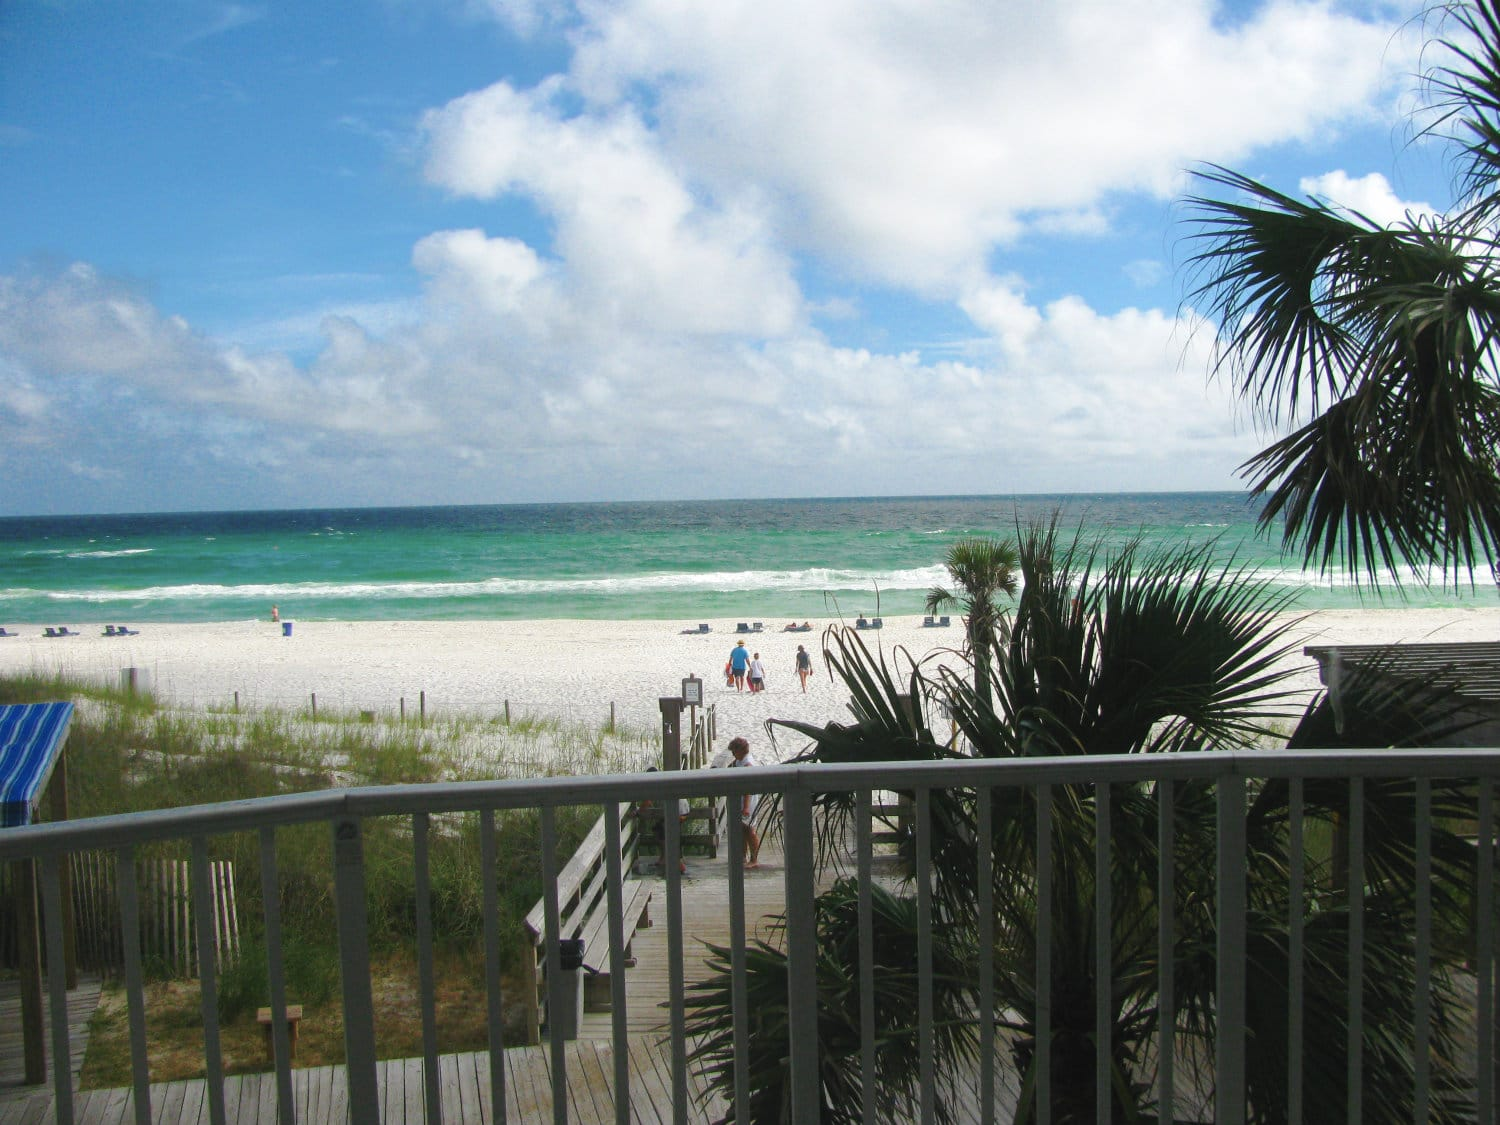 A Day in Panama City Beach